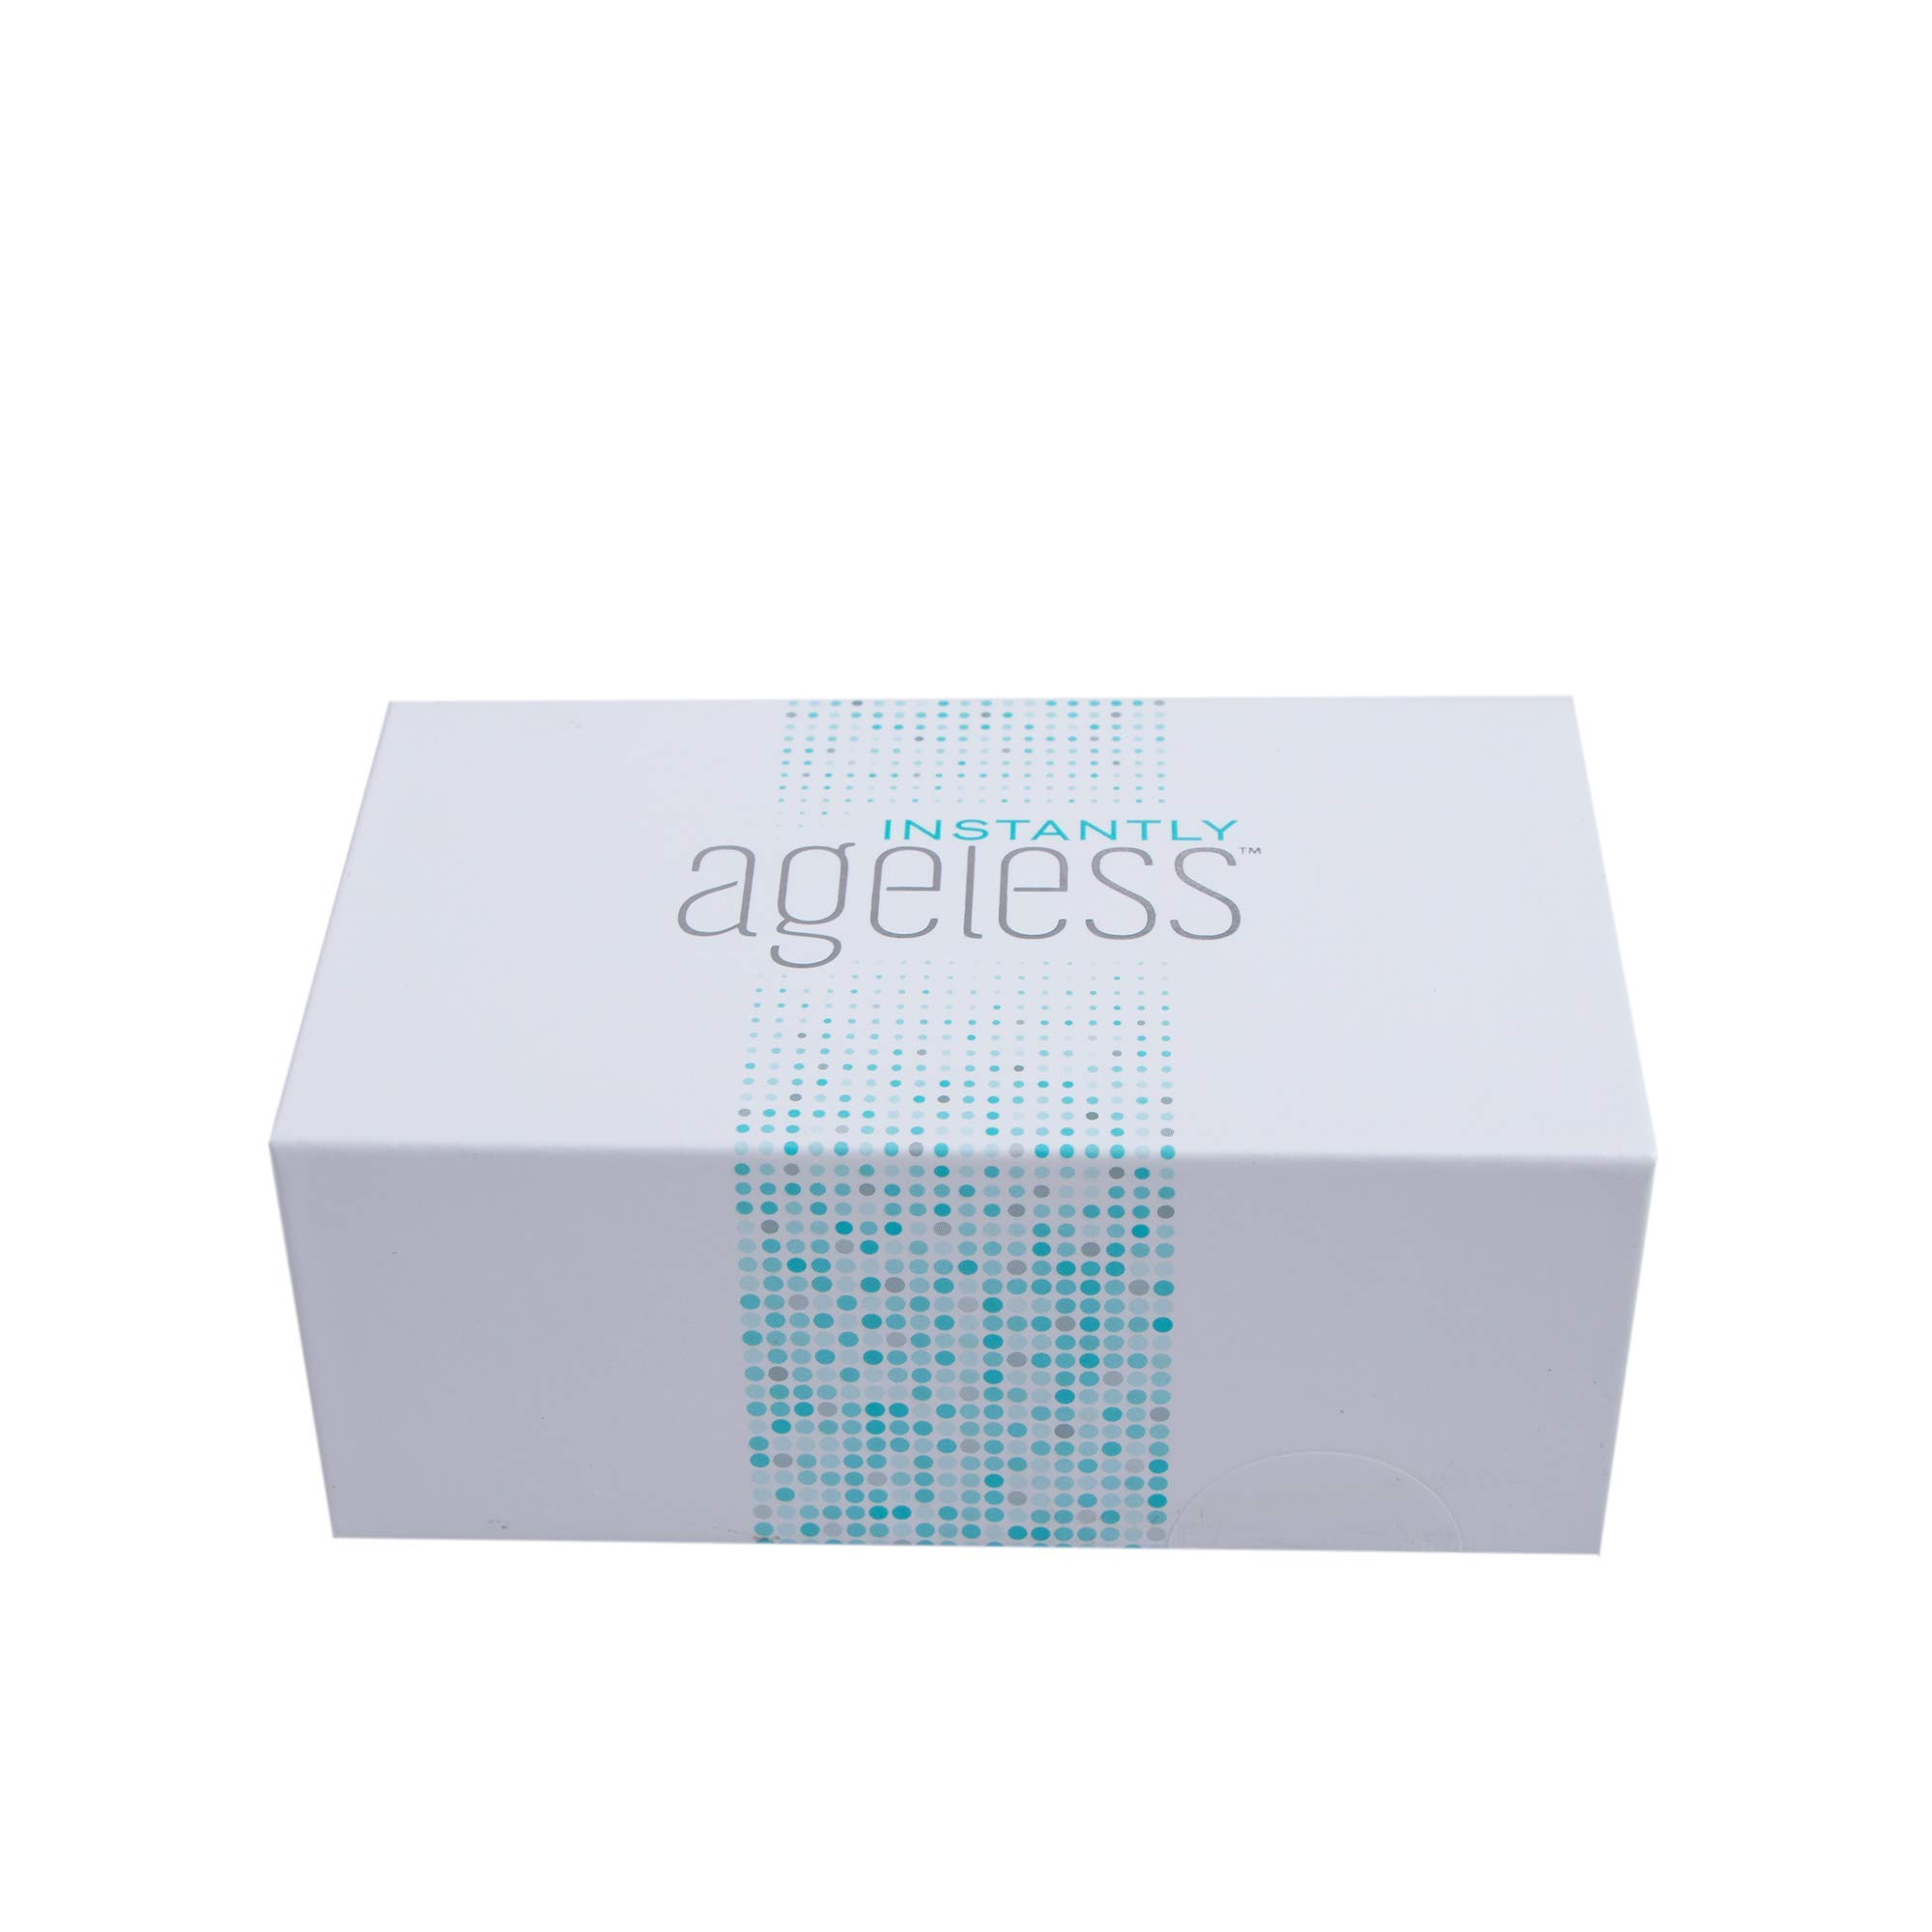 INSTANTLY AGELESS - Anti-Wrinkle Micro-Cream to Visibly Reduce Signs of Aging in Just Two Minutes (25 vials) by Jeunesse Global